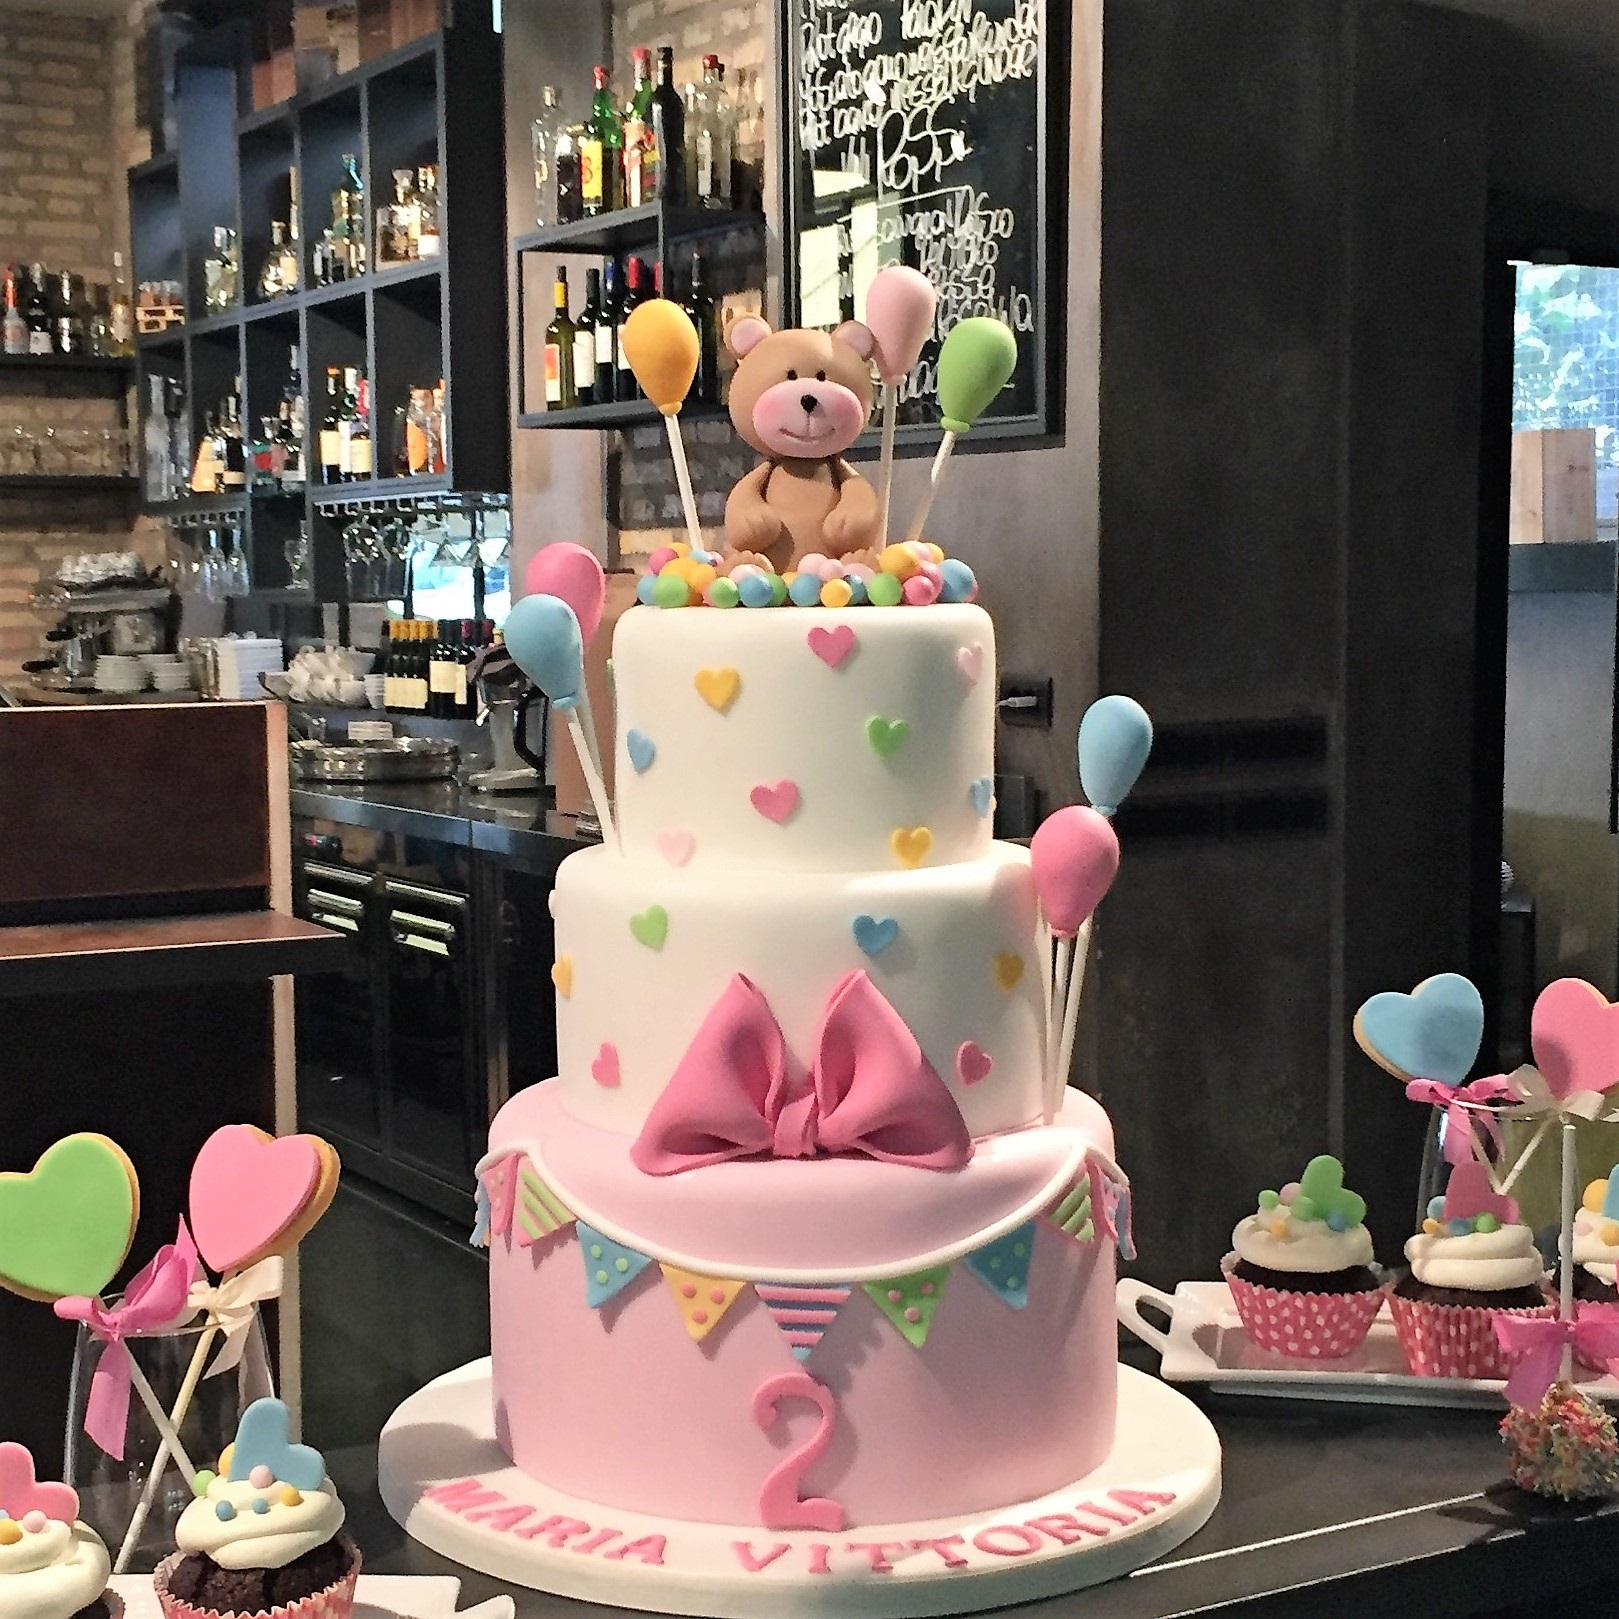 Pink and white teddy bear birthday cake